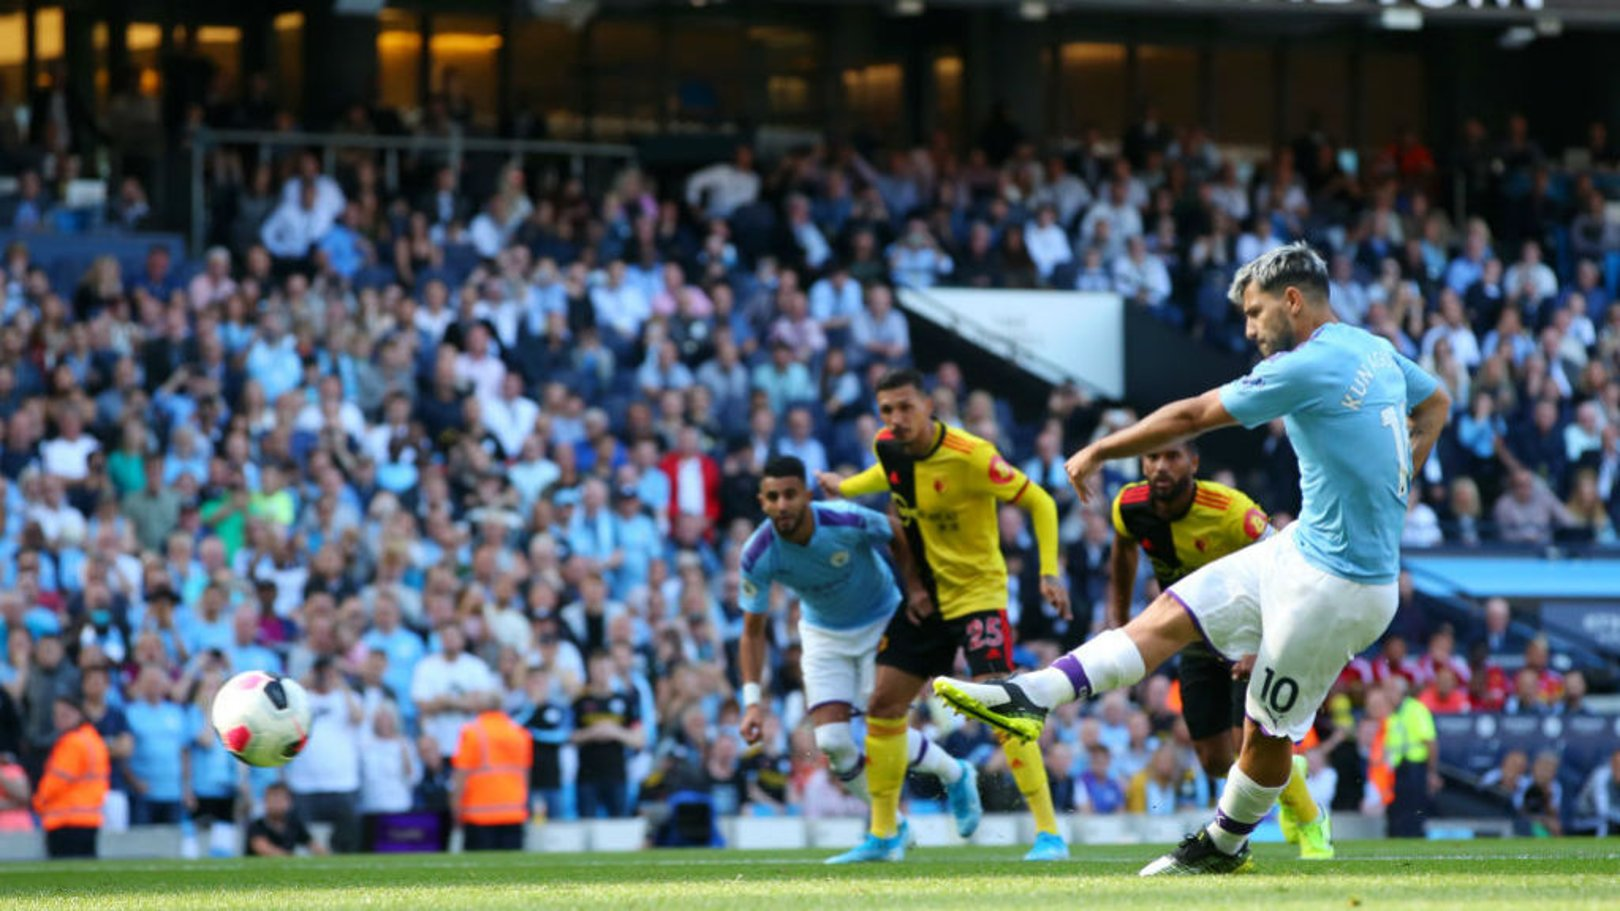 TON UP: Aguero has bagged 100 Premier League goals at the Etihad